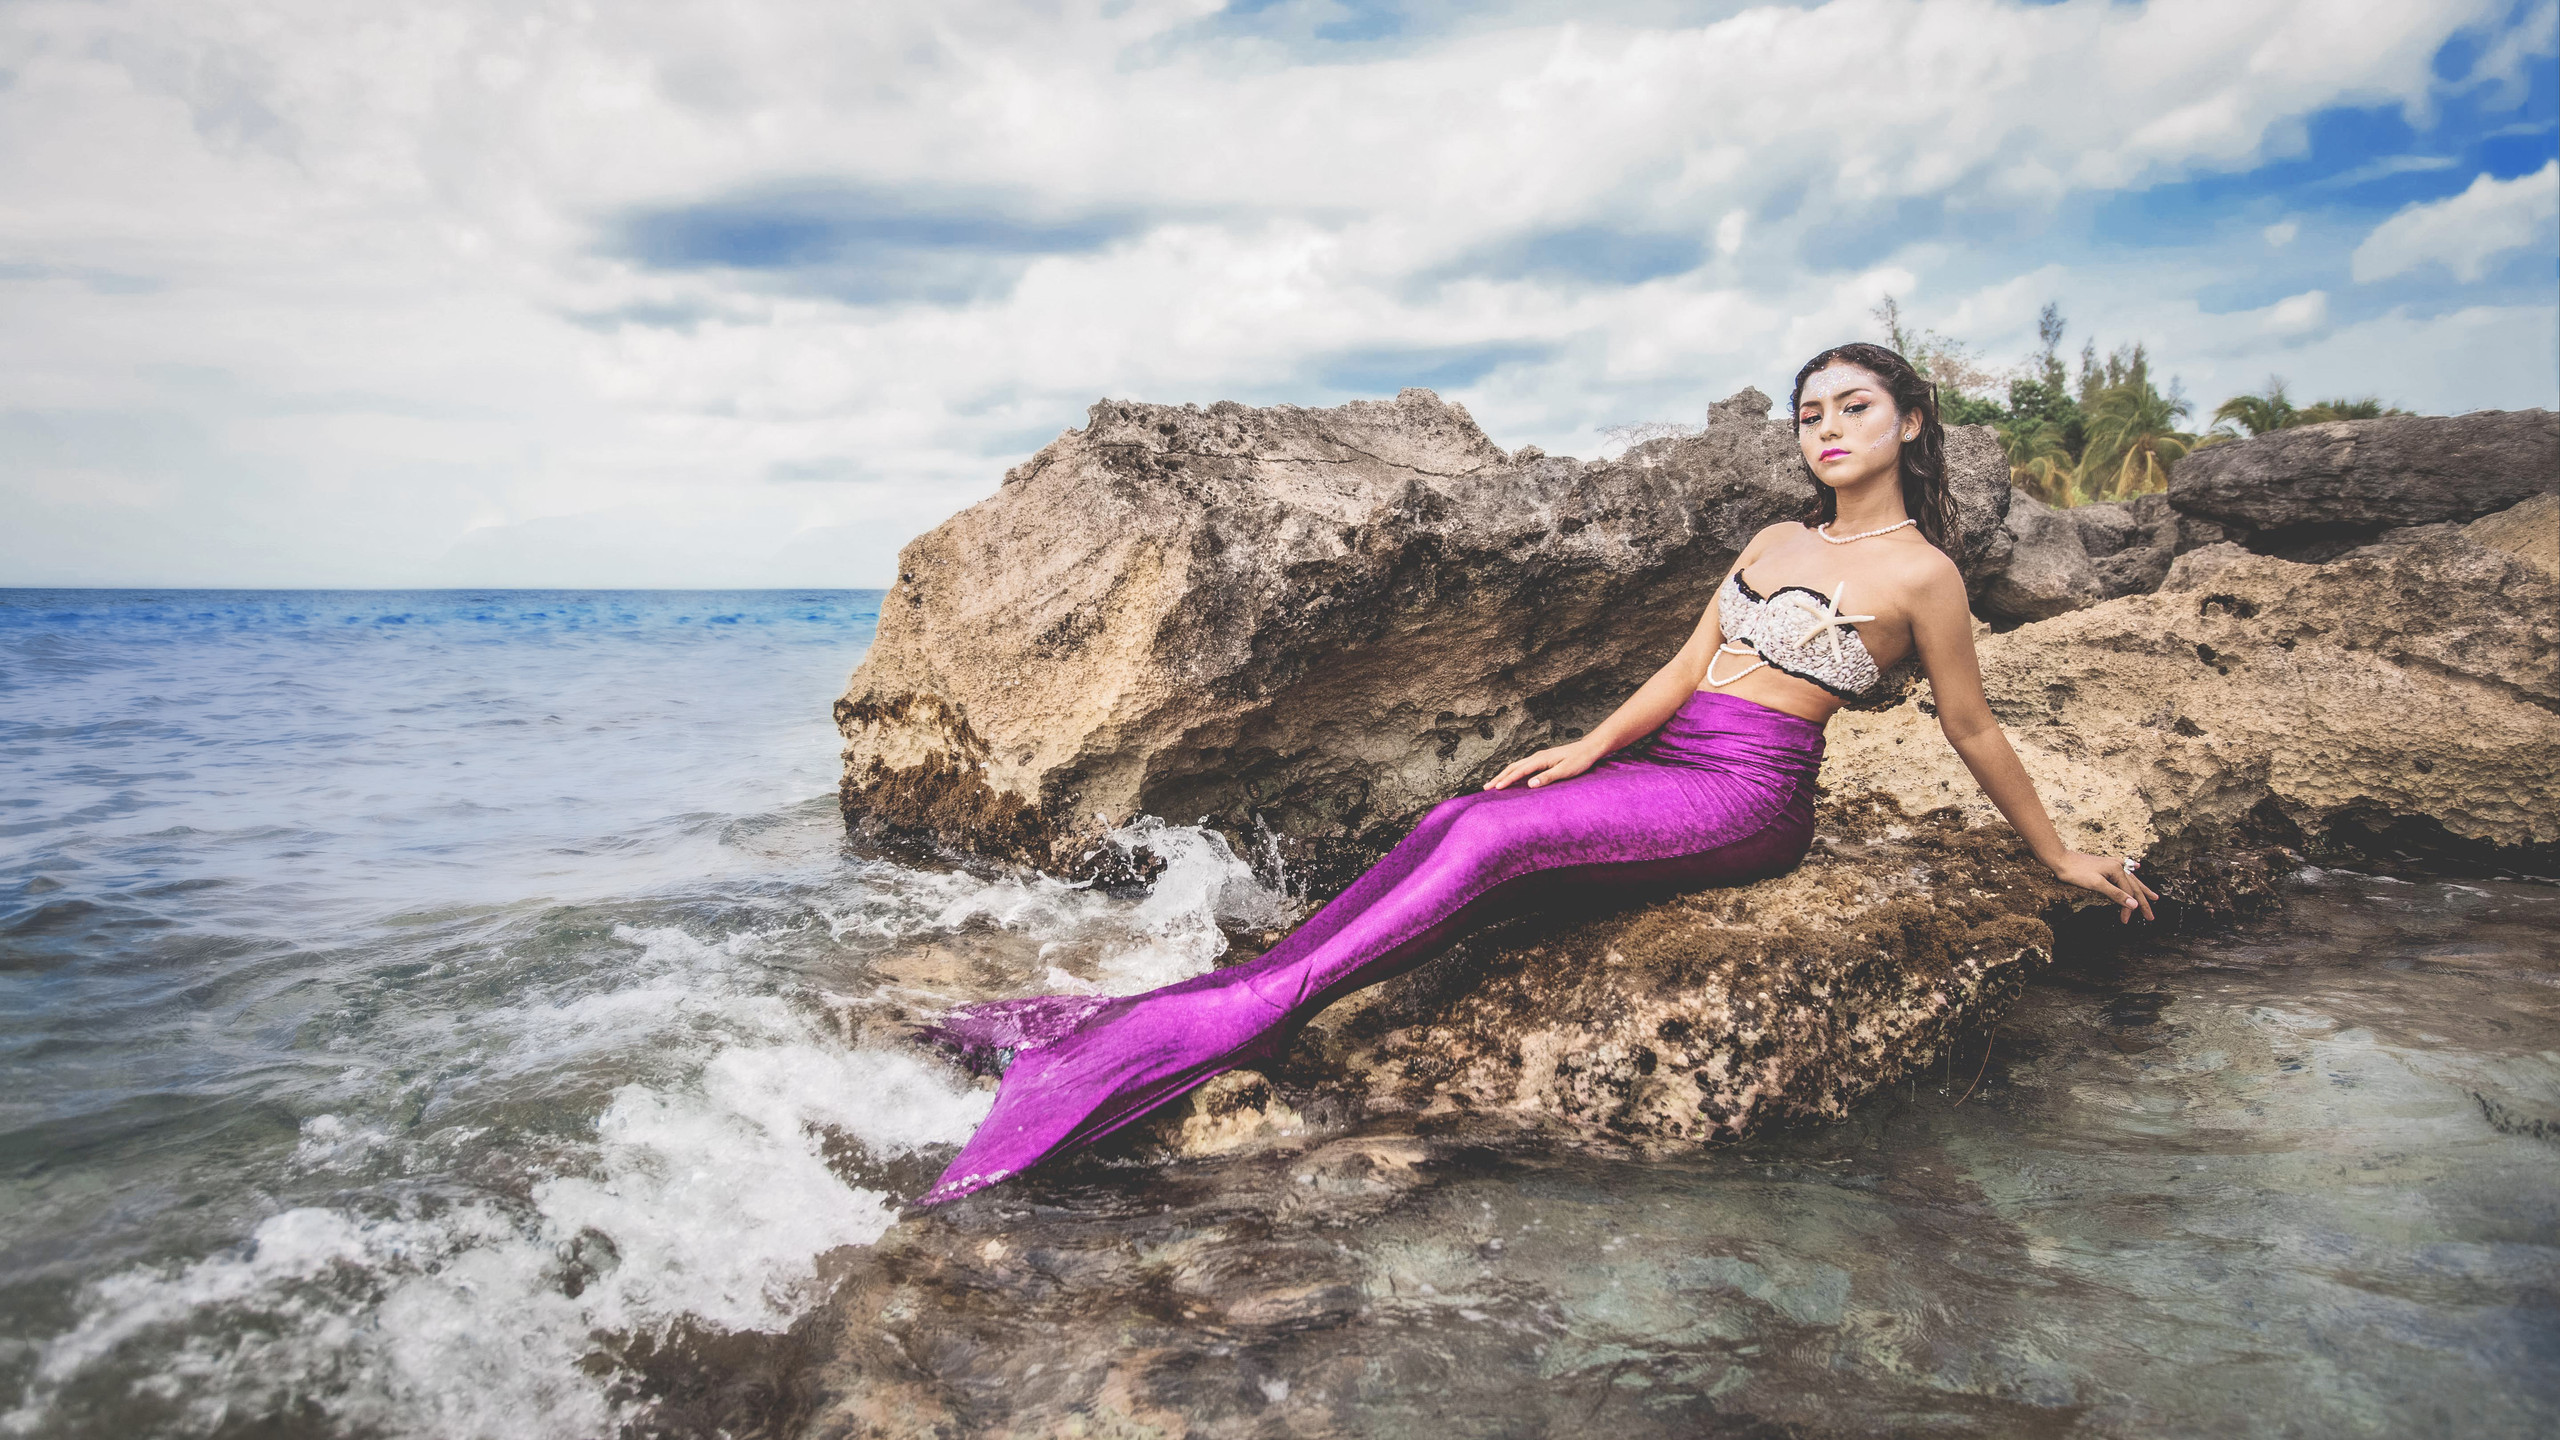 Mermaids in Cozumel